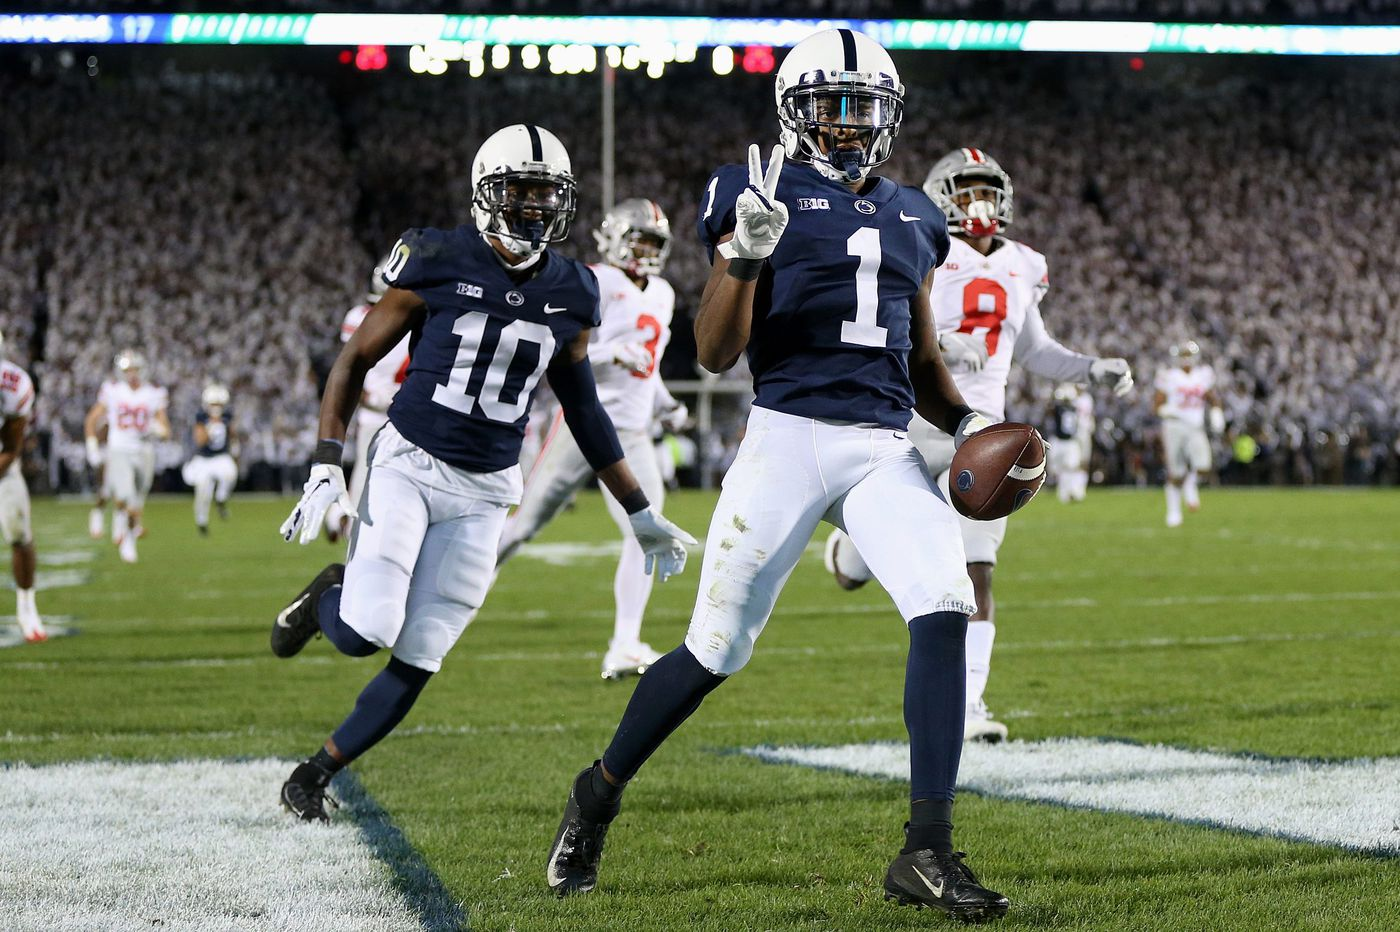 Penn State's K.J. Hamler makes some serious plays while having fun